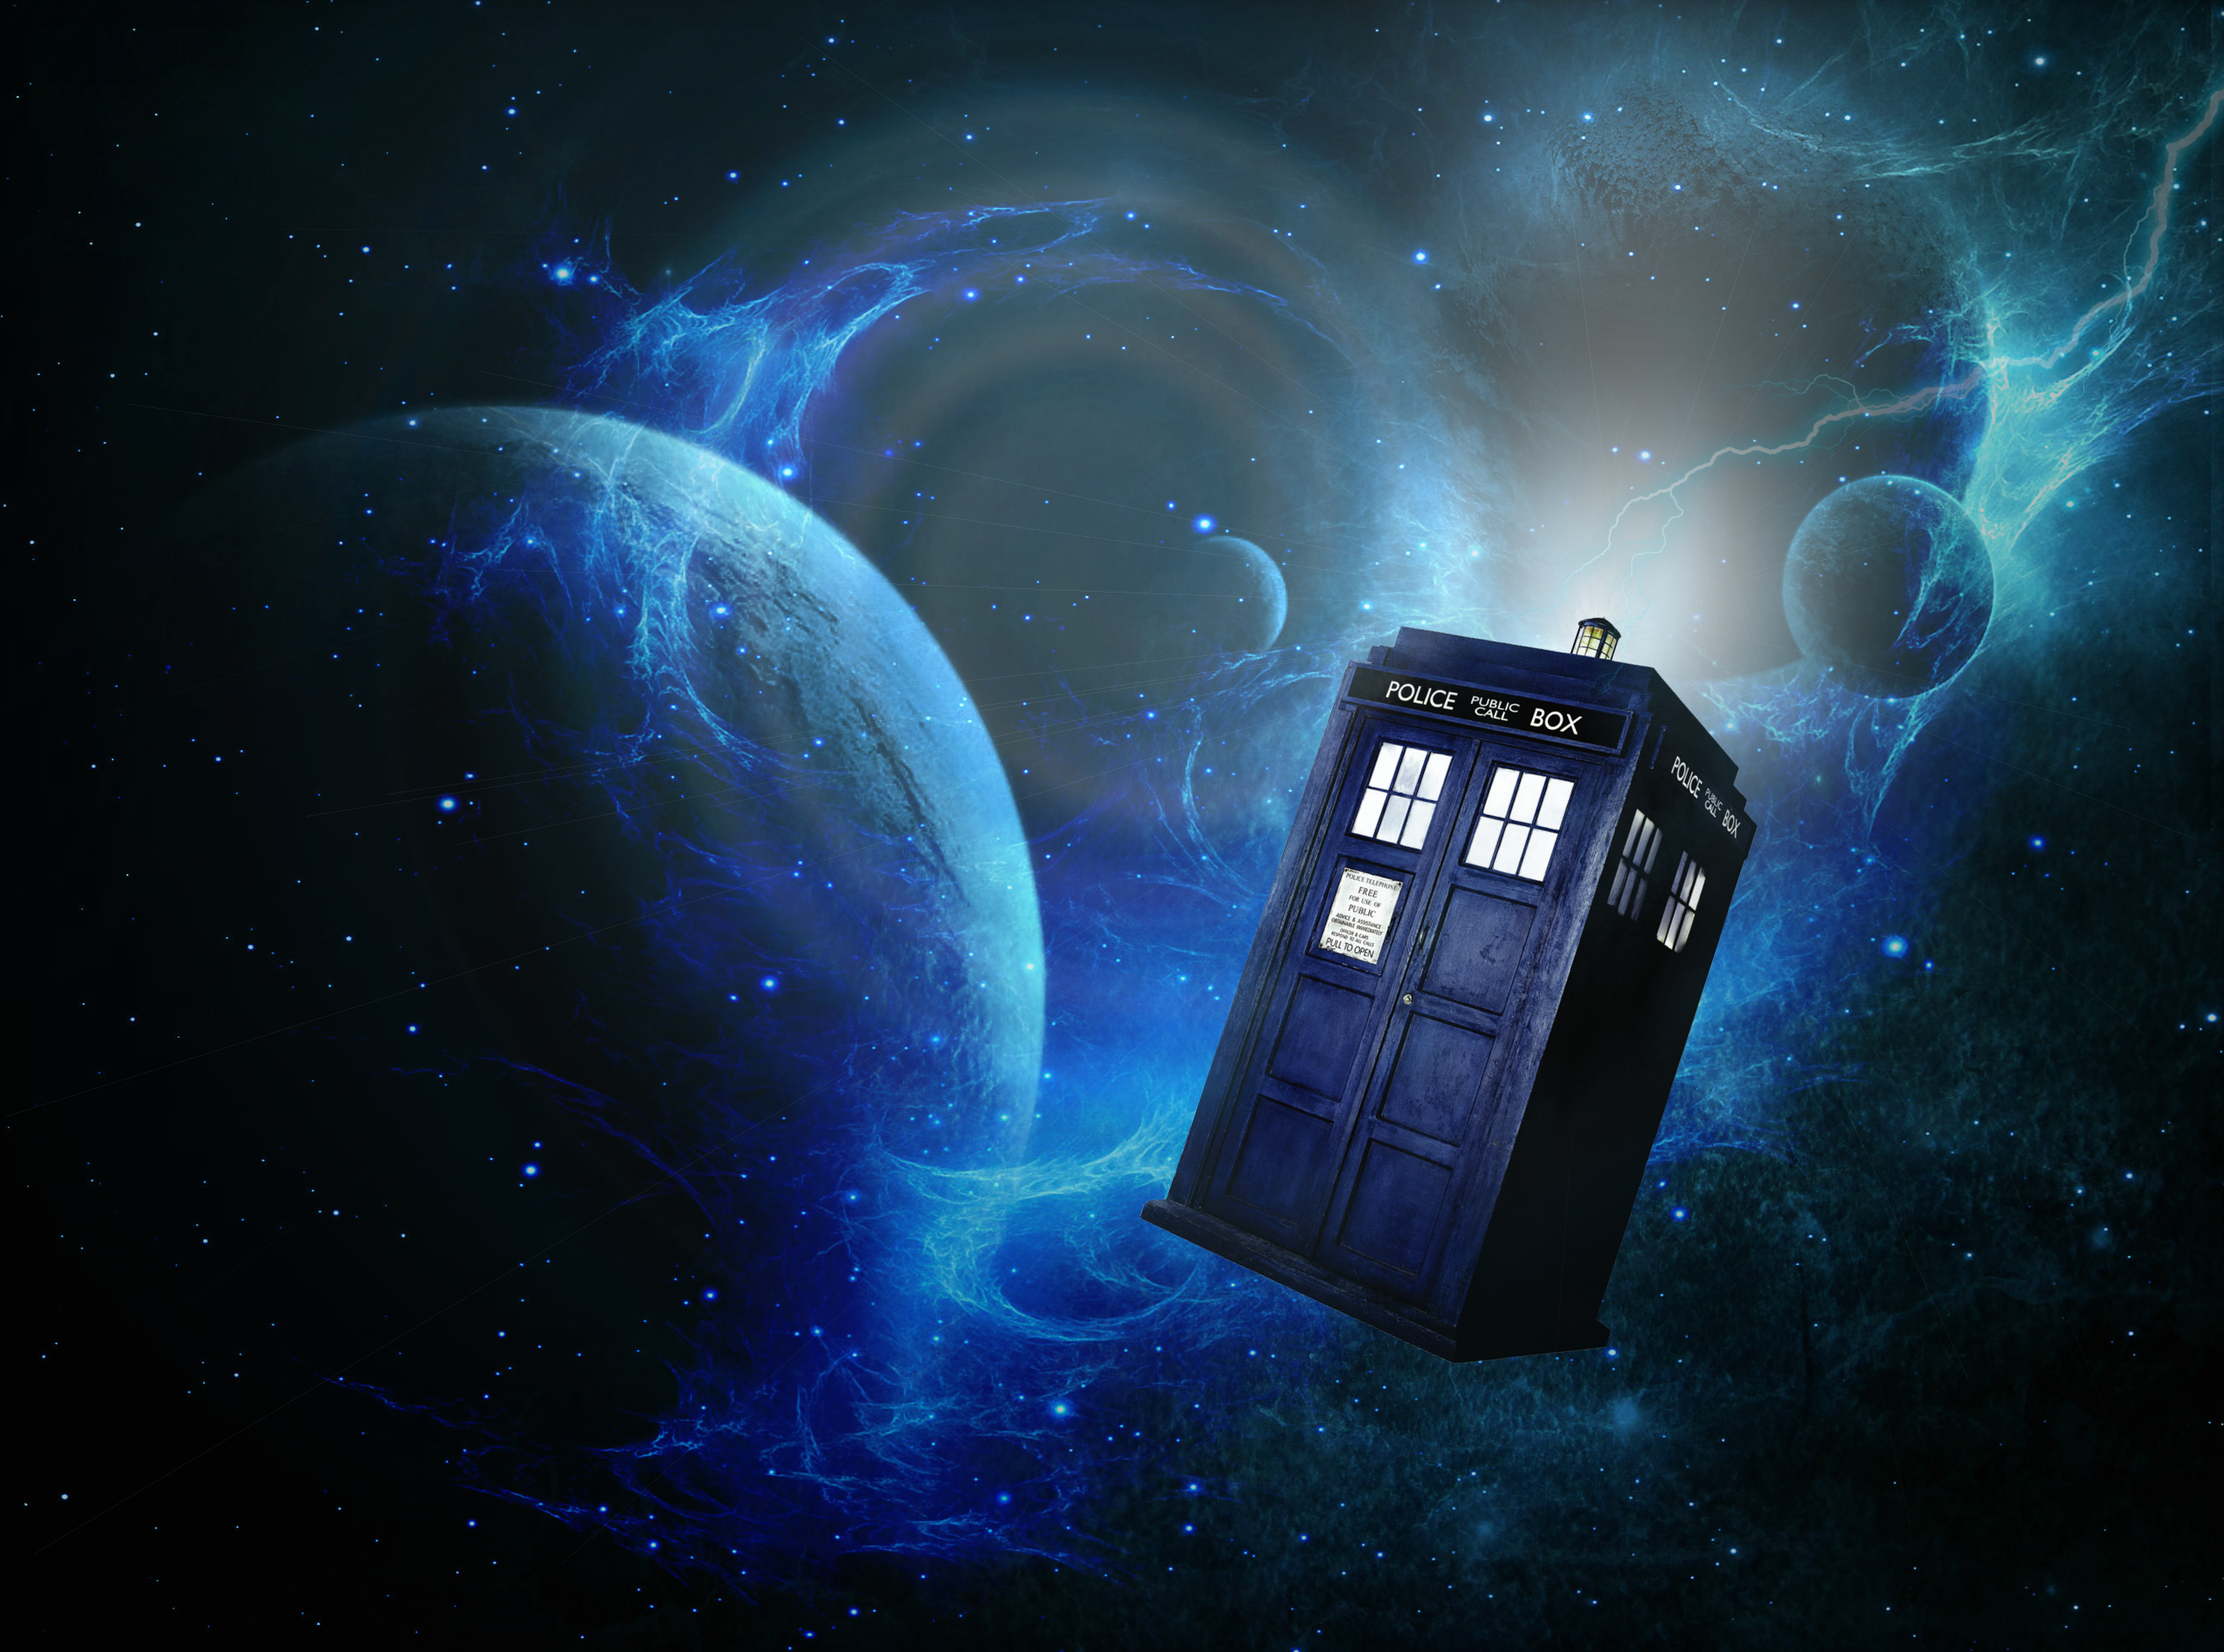 View topic - A New Horizon (doctor who rp) open and